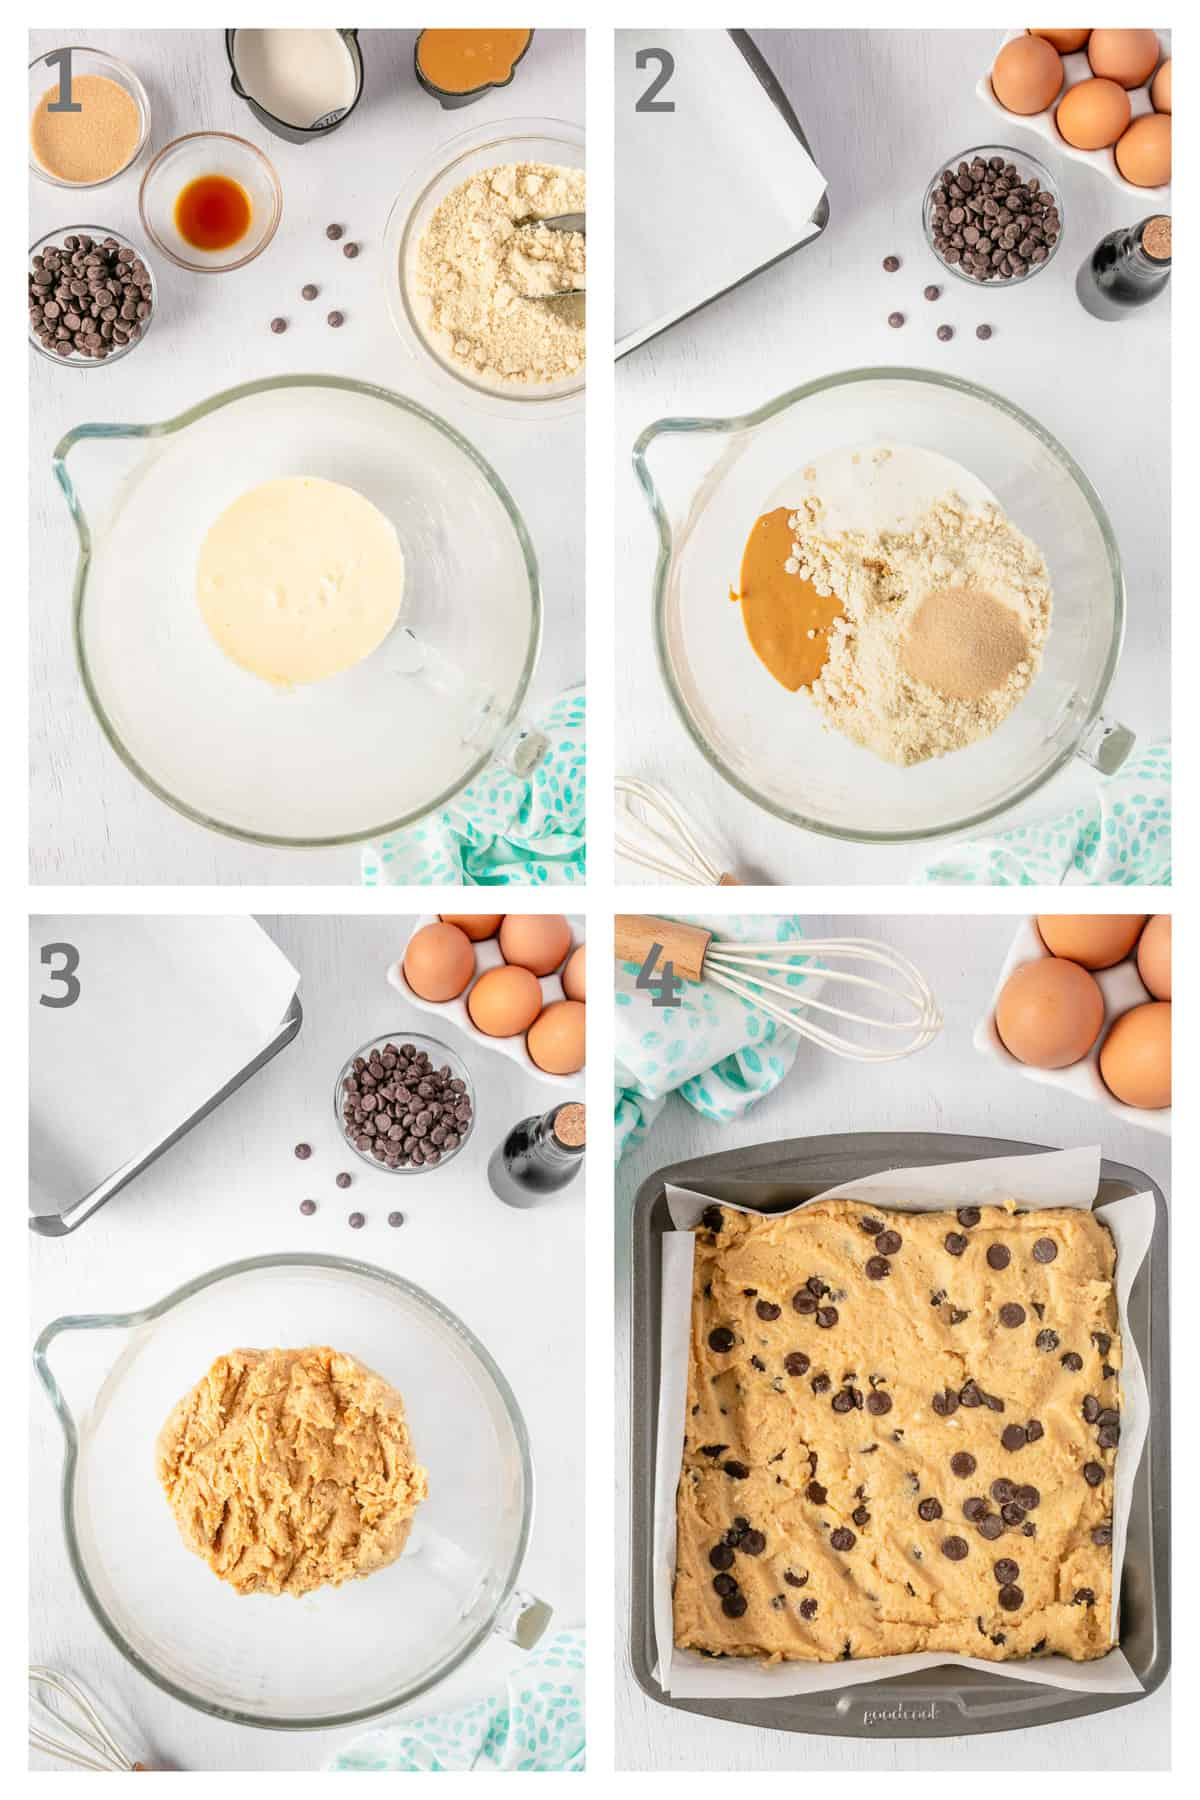 Step by step instructions for making low carb chocolate peanut butter bars